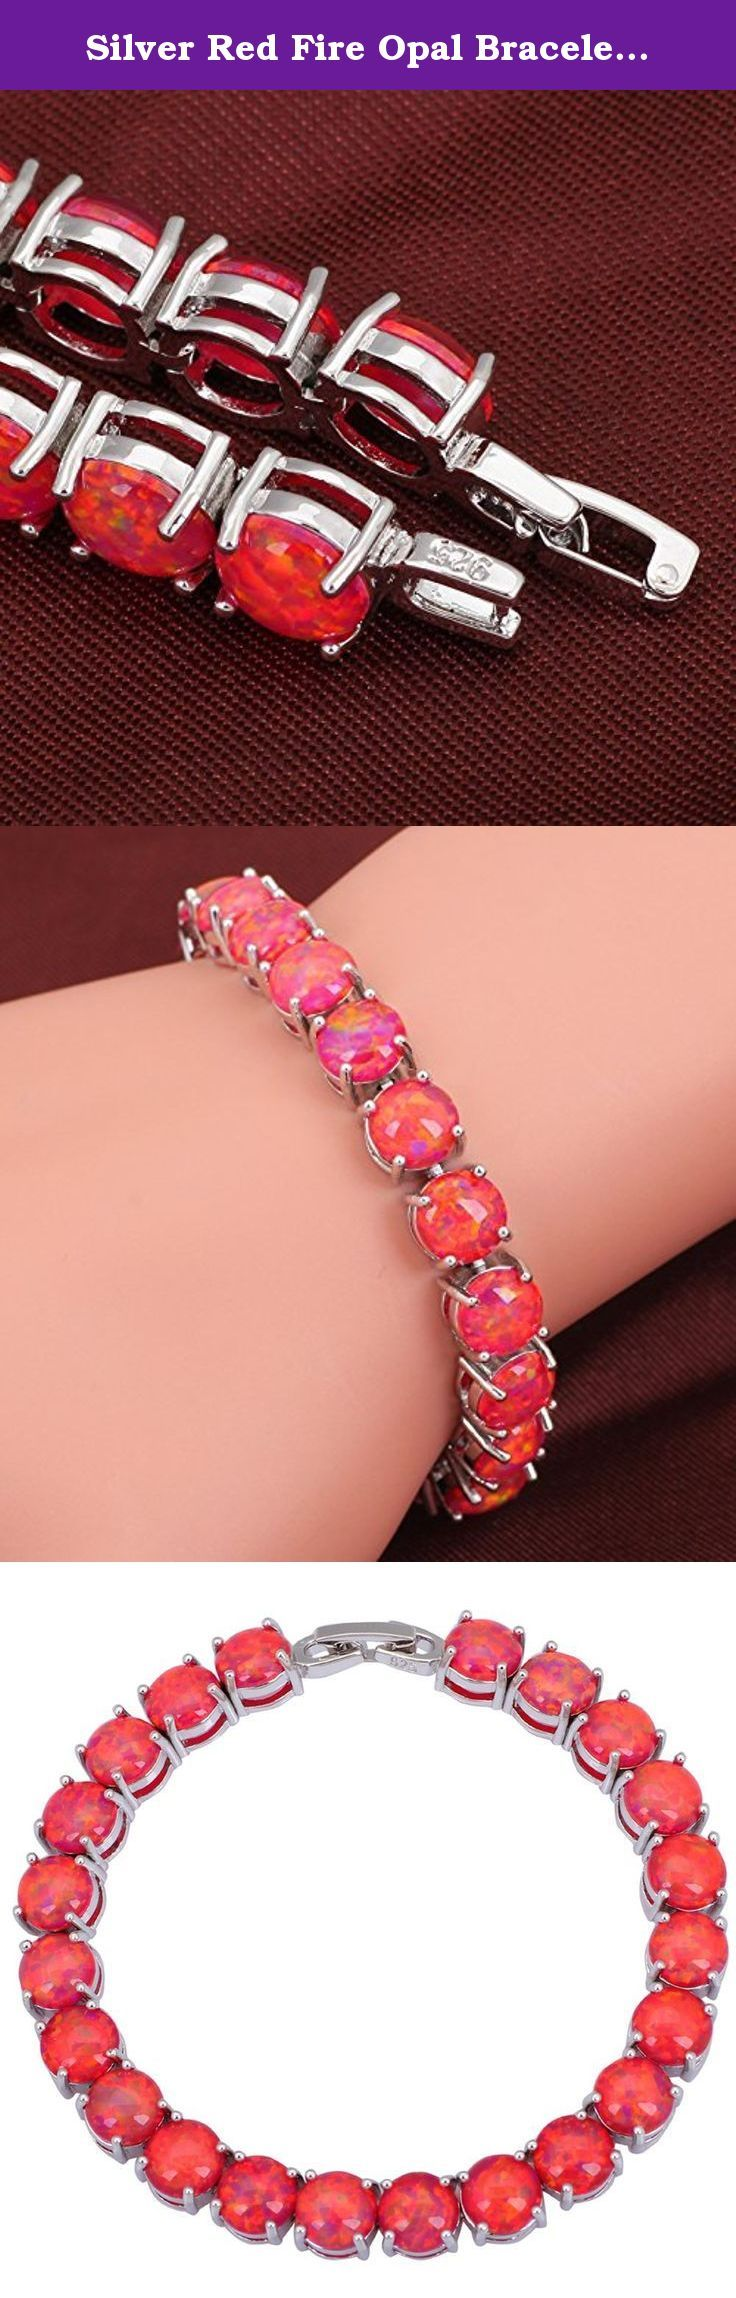 Silver Red Fire Opal Bracelets Bangles for Teen Girls Pulseiras Femininas 19.5cm 7.67inch B432. Brand DANA Metal Silver Main Stone Opal 5*7 mm Main Color Red Weight 18.9 Grams (Opal & Silver) Bracelets Perimeter 195mm Quantity 1 pcs Country of Manufacture Chian Environmental Standards Europe $ Nickel,Lead,Cadmium free 1 inch=2.54cm=25.4mm.